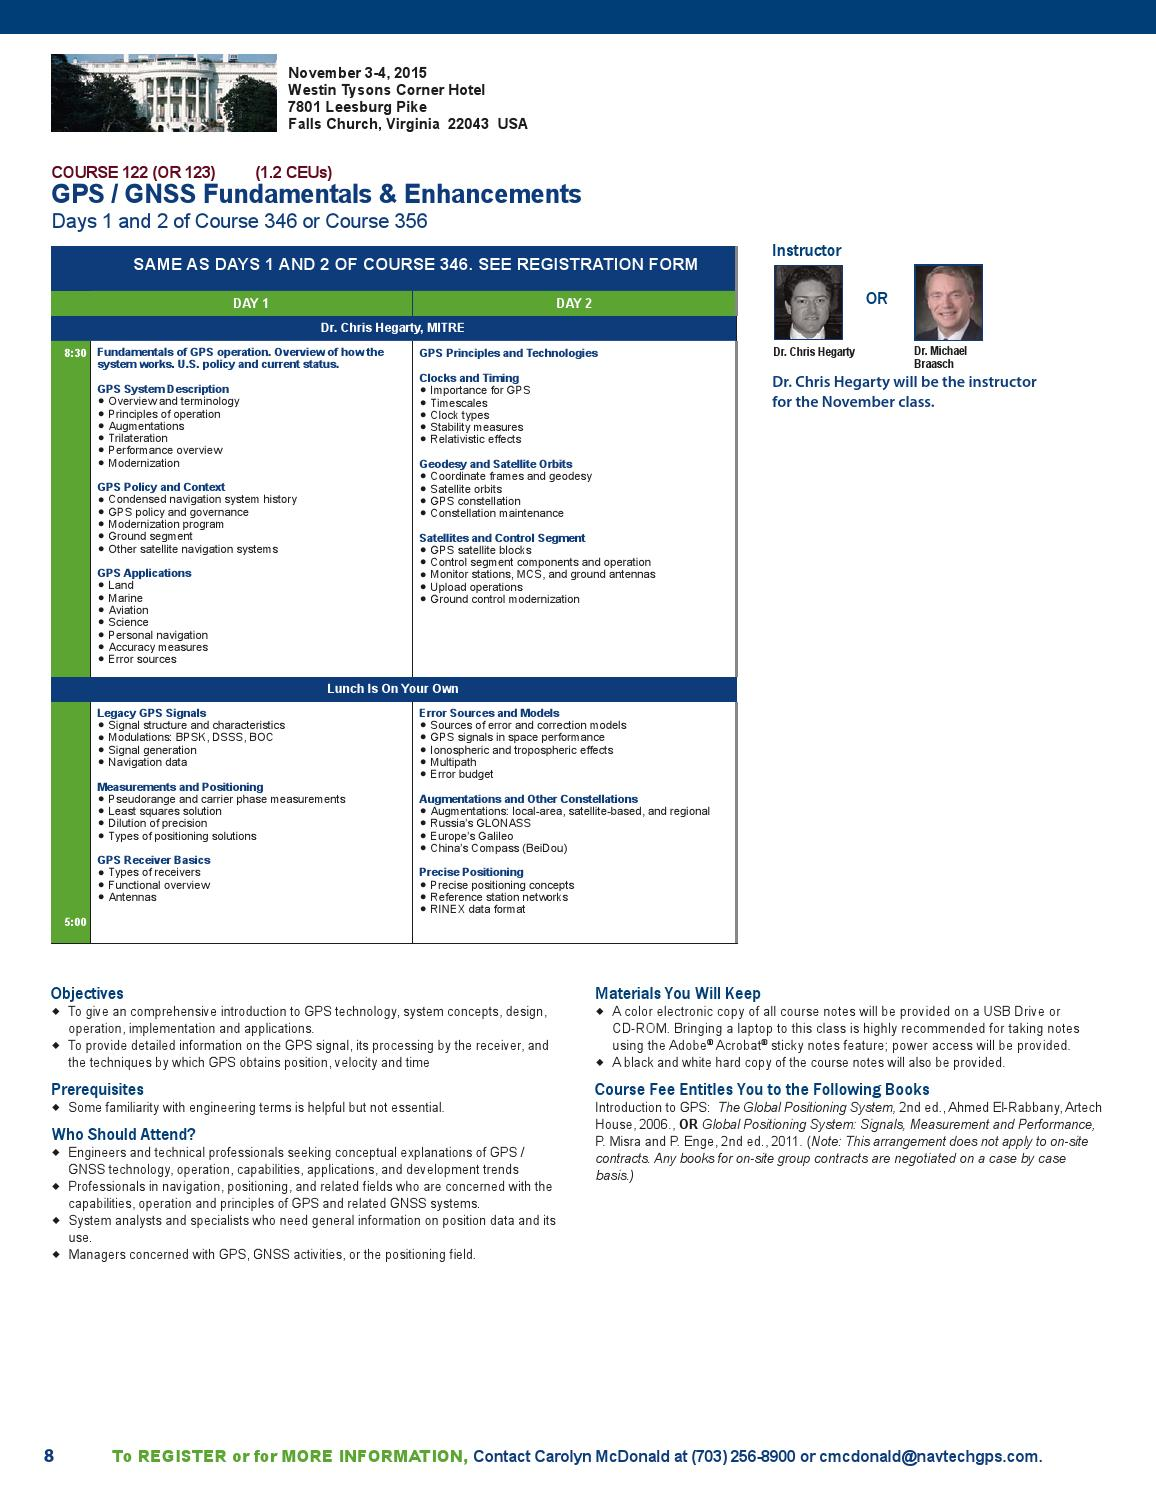 Gps gnss fundamentals and enhancements by NavtechGPS - issuu